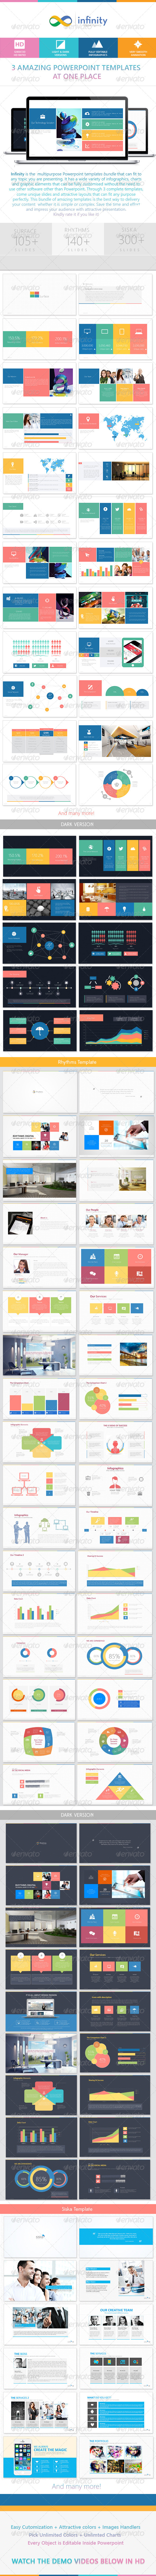 GraphicRiver Infinity 3 Powerpoint Bundle 8051037